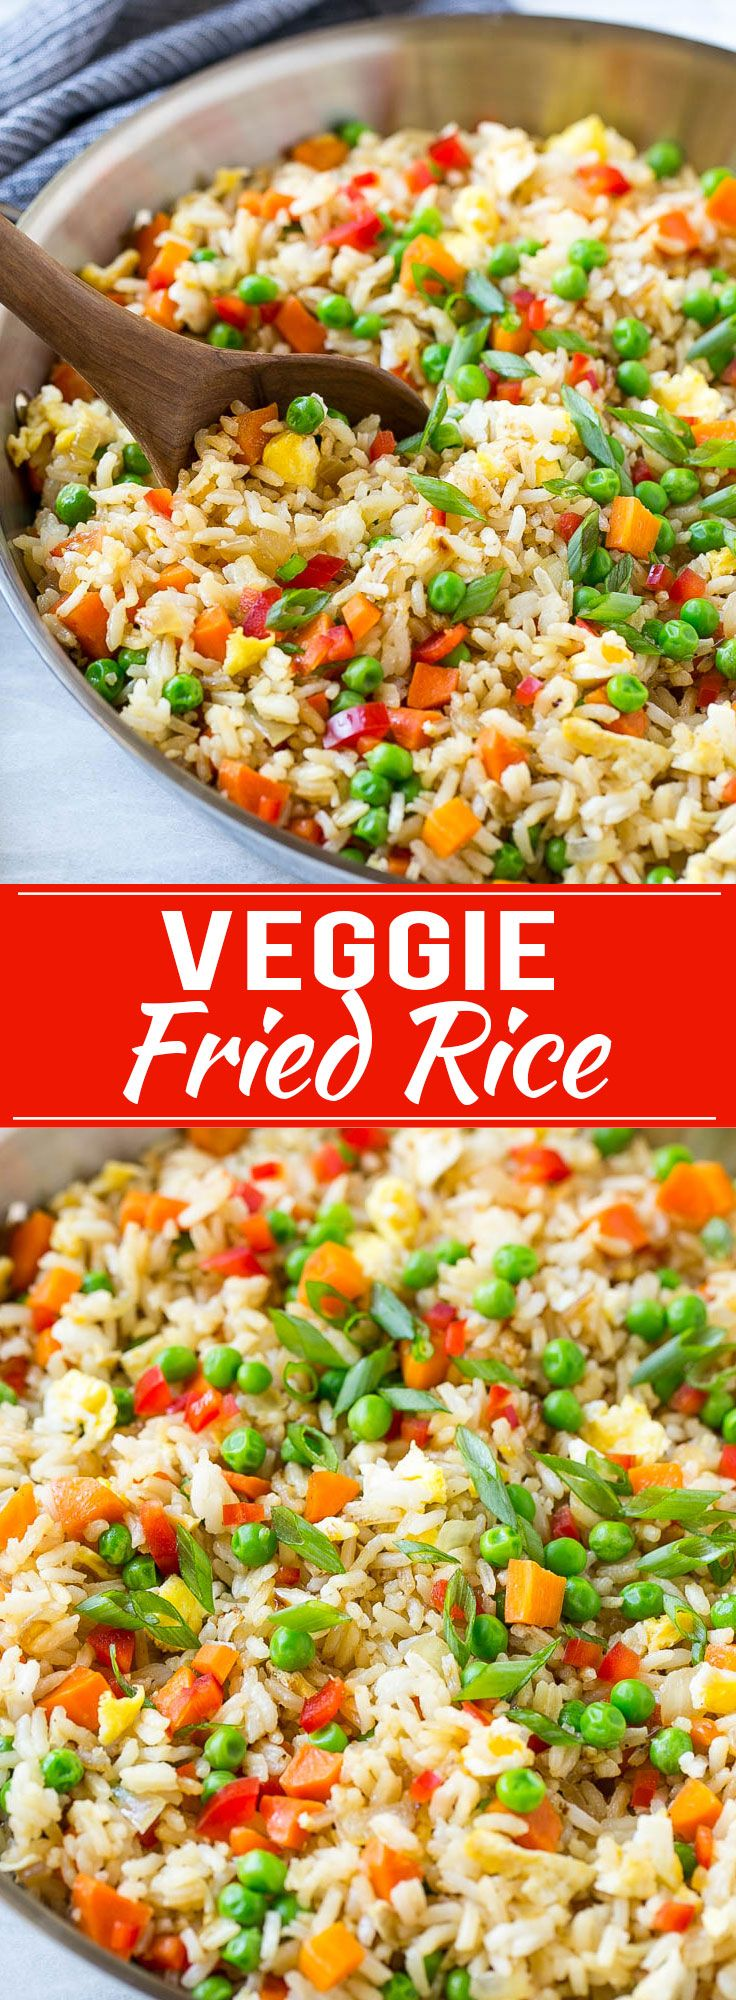 Veggie Fried Rice Recipe | Chinese Food Recipe | Vegetarian Fried Rice | Easy Fried Rice Recipe | Take Out